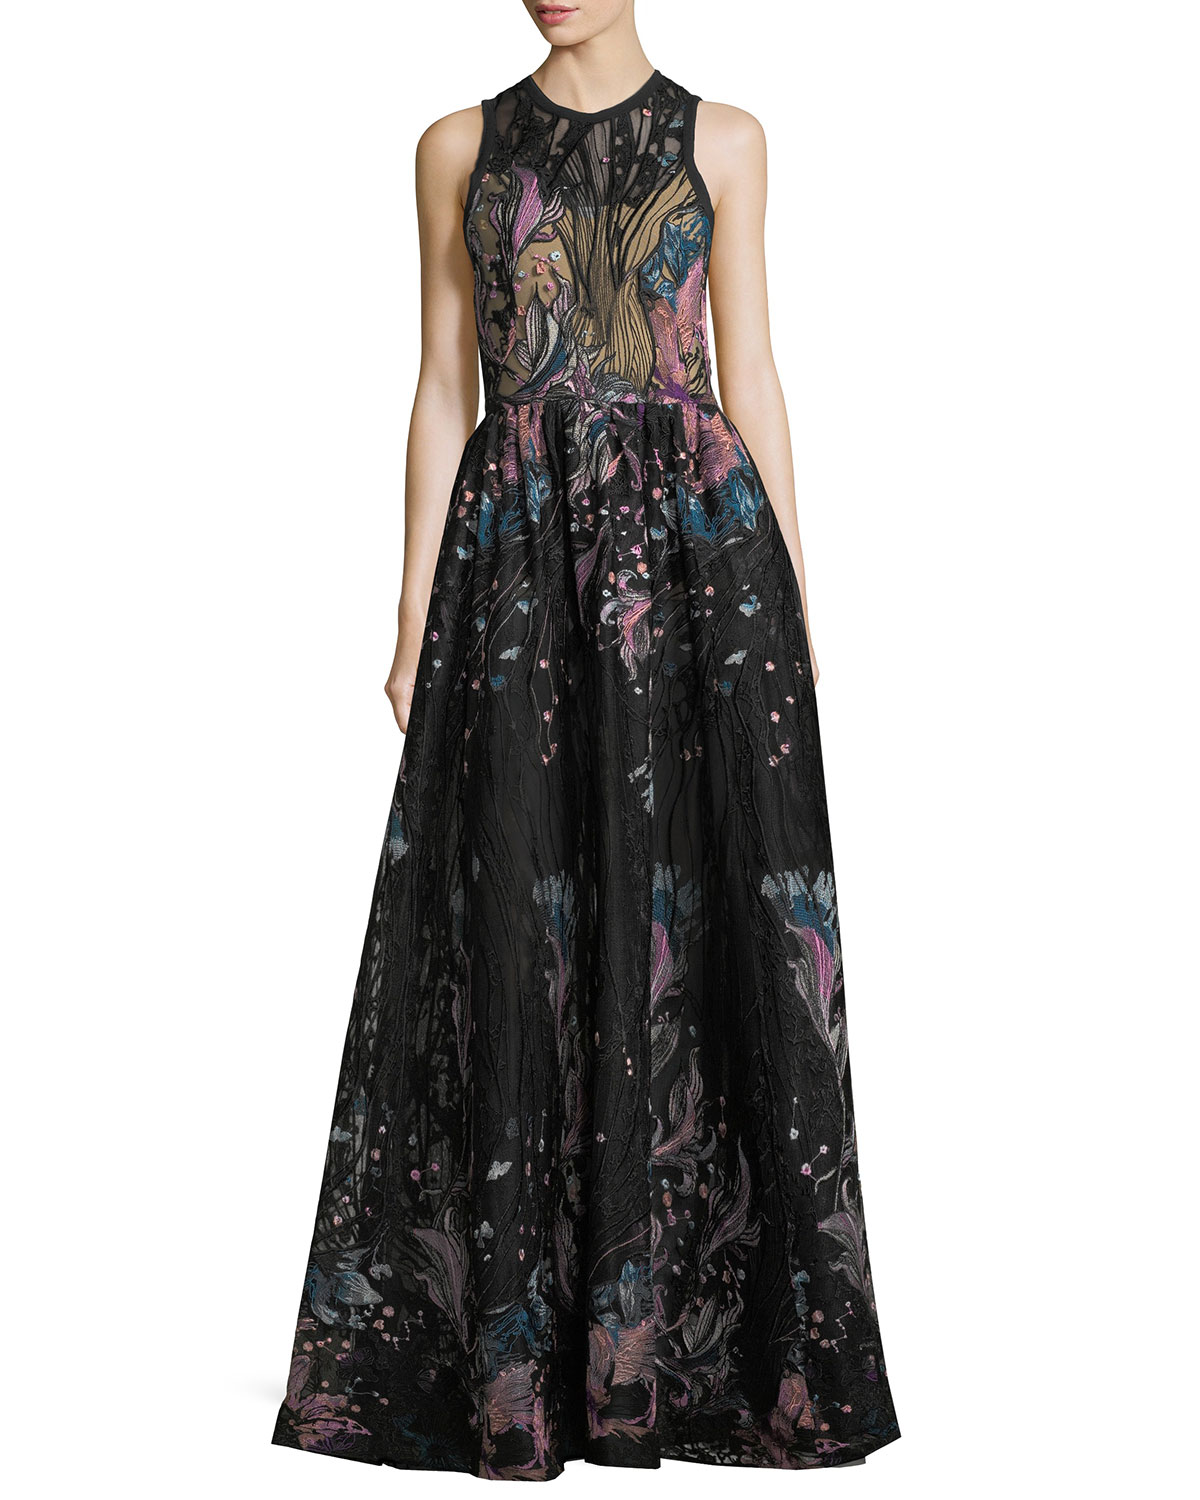 Elie Saab Floral-Embroidered Tulle Evening Gown | Neiman Marcus